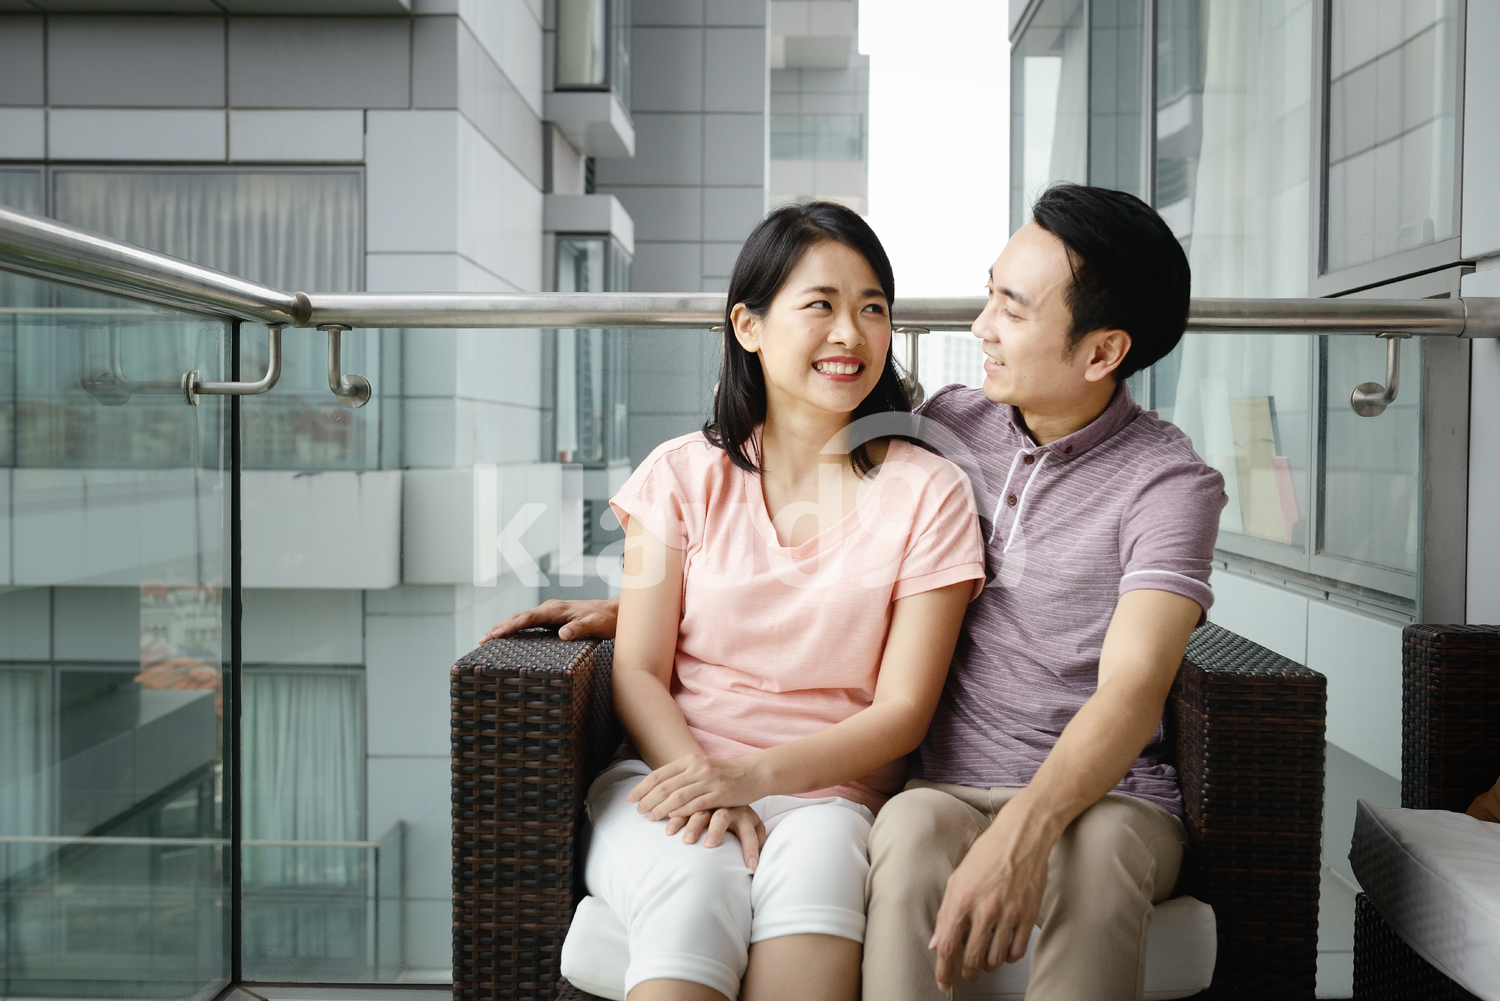 Young couple cuddling on a condo balcony